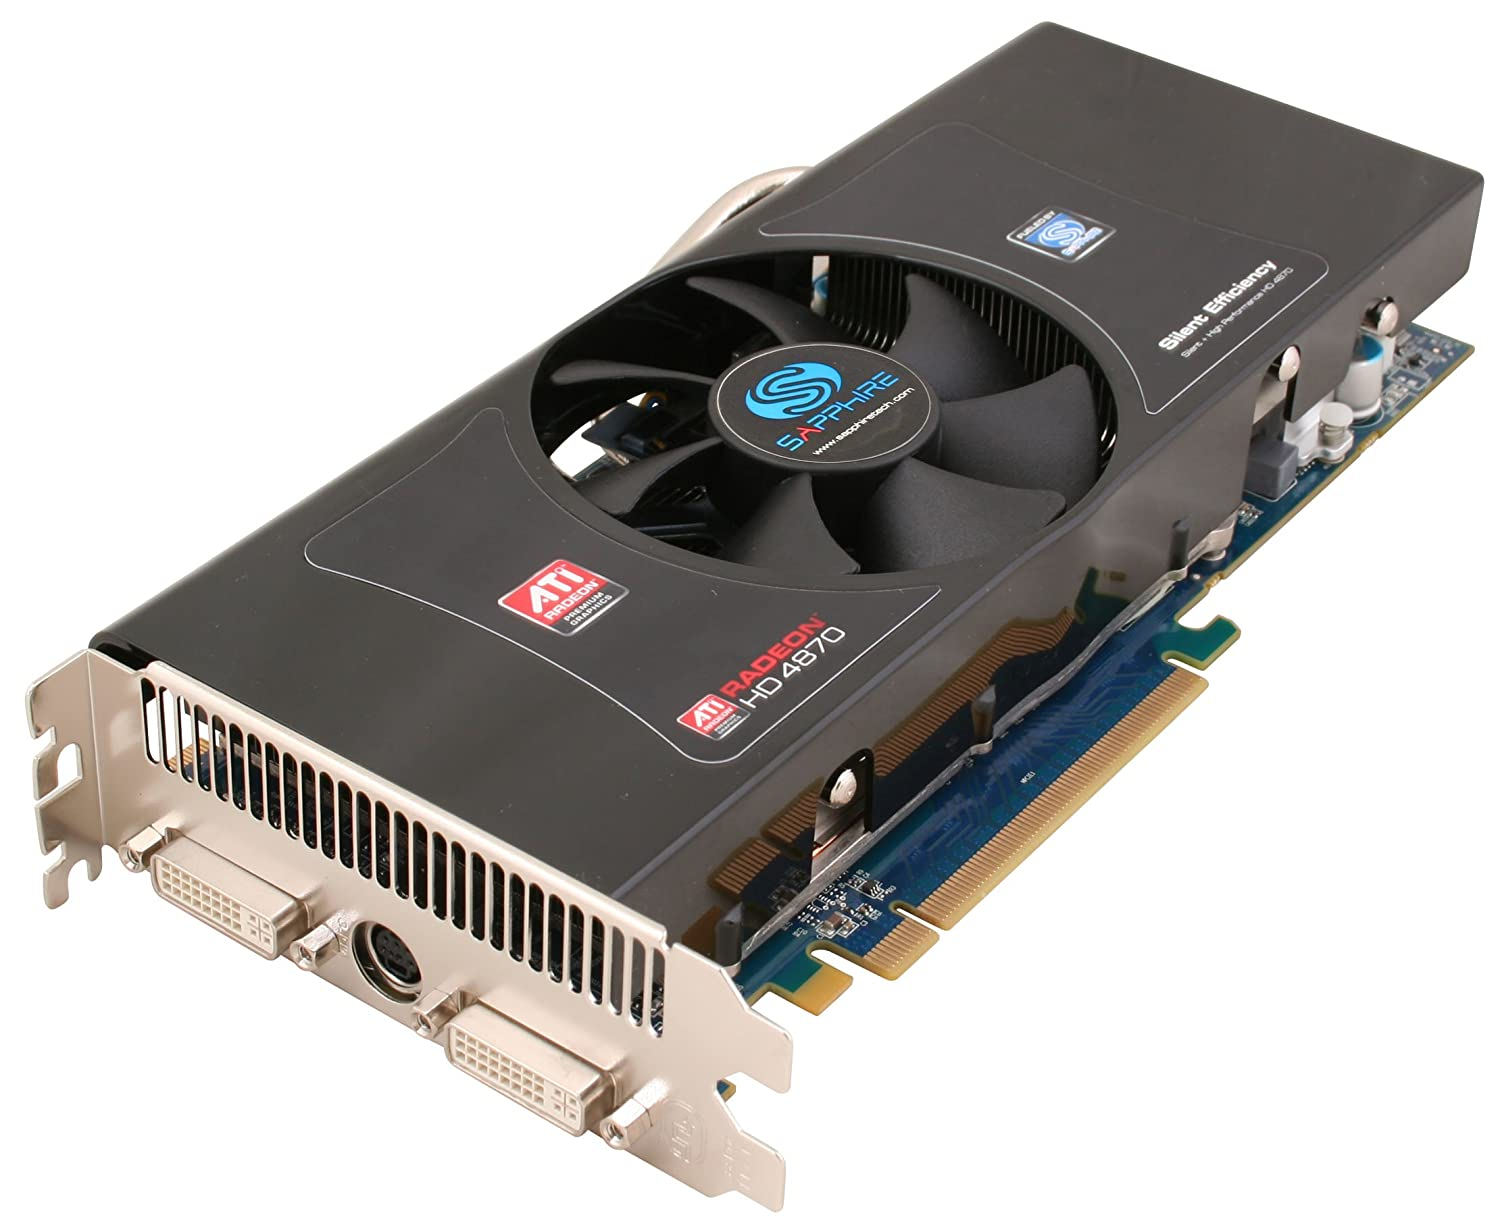 ATI RADEON HD 4870 DRIVER DOWNLOAD FREE